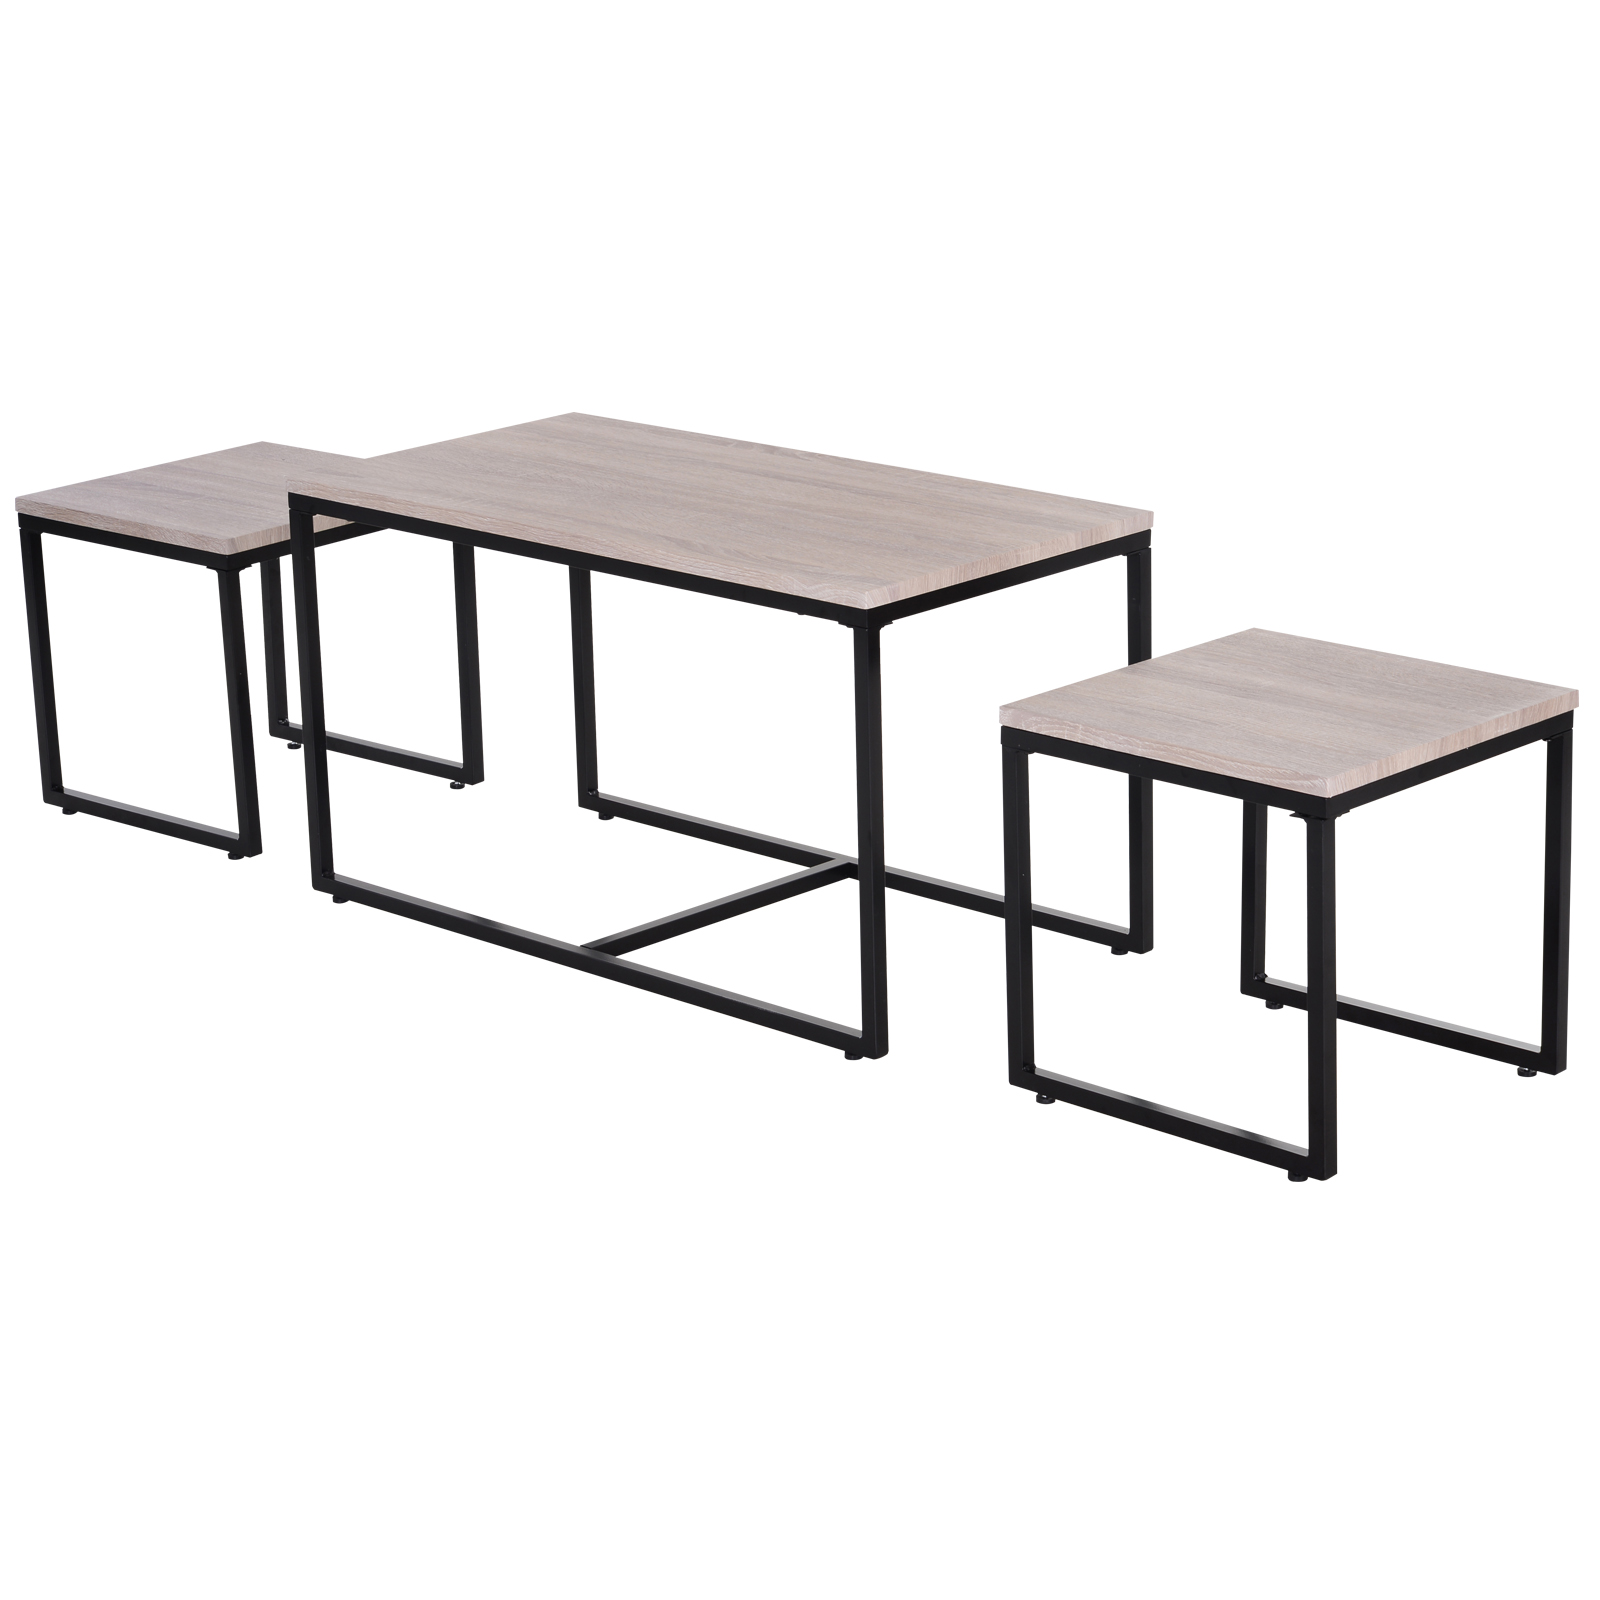 HOMCOM Set 3 Coffee Tables Minimal Design Shelf Finish MDF Laminated PVC Water-resistant And Wear-resistant